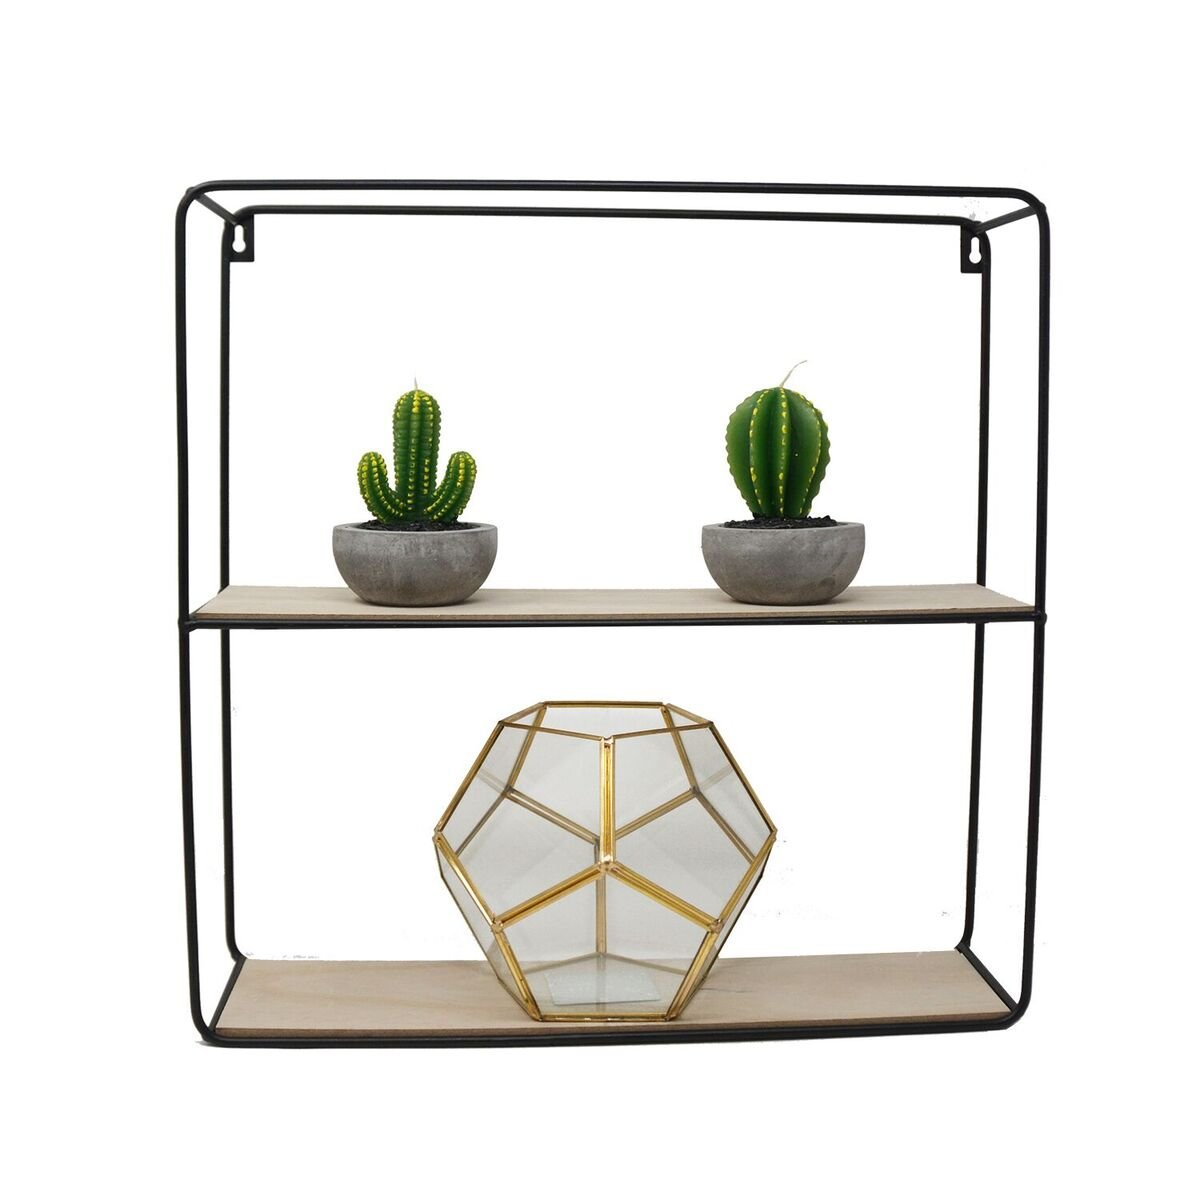 The Nifty Nook Modern Metal Wire Frame Floating Shelves - Decorative Wall Mounted Wire Cube, Set of 4, Black